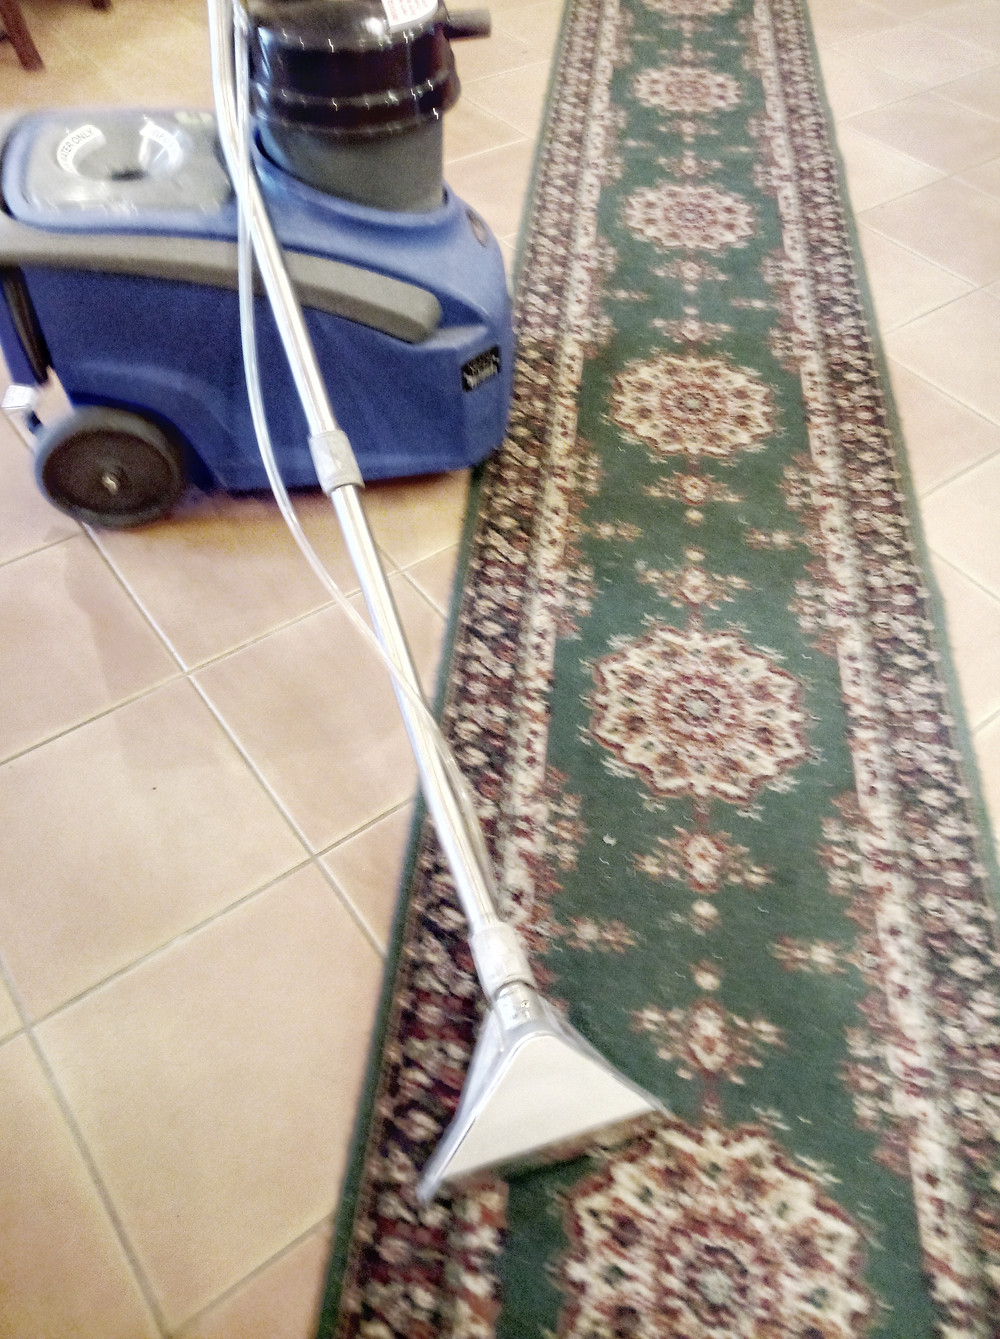 Britex steam cleaner for Carpets and Rugs : Green Cleaning alternative to chemicals